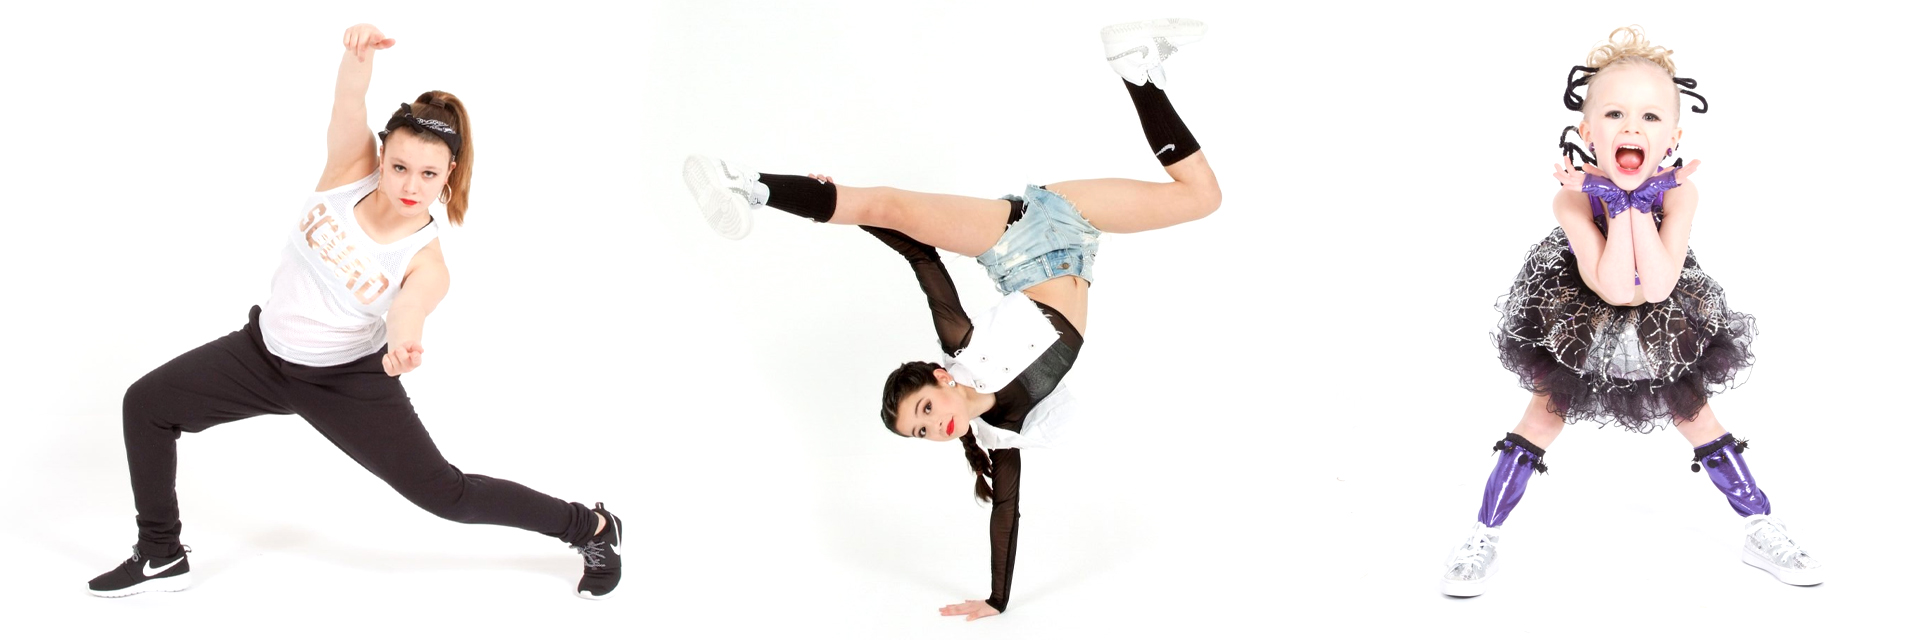 Hip Hop Dance Expressions By Erica